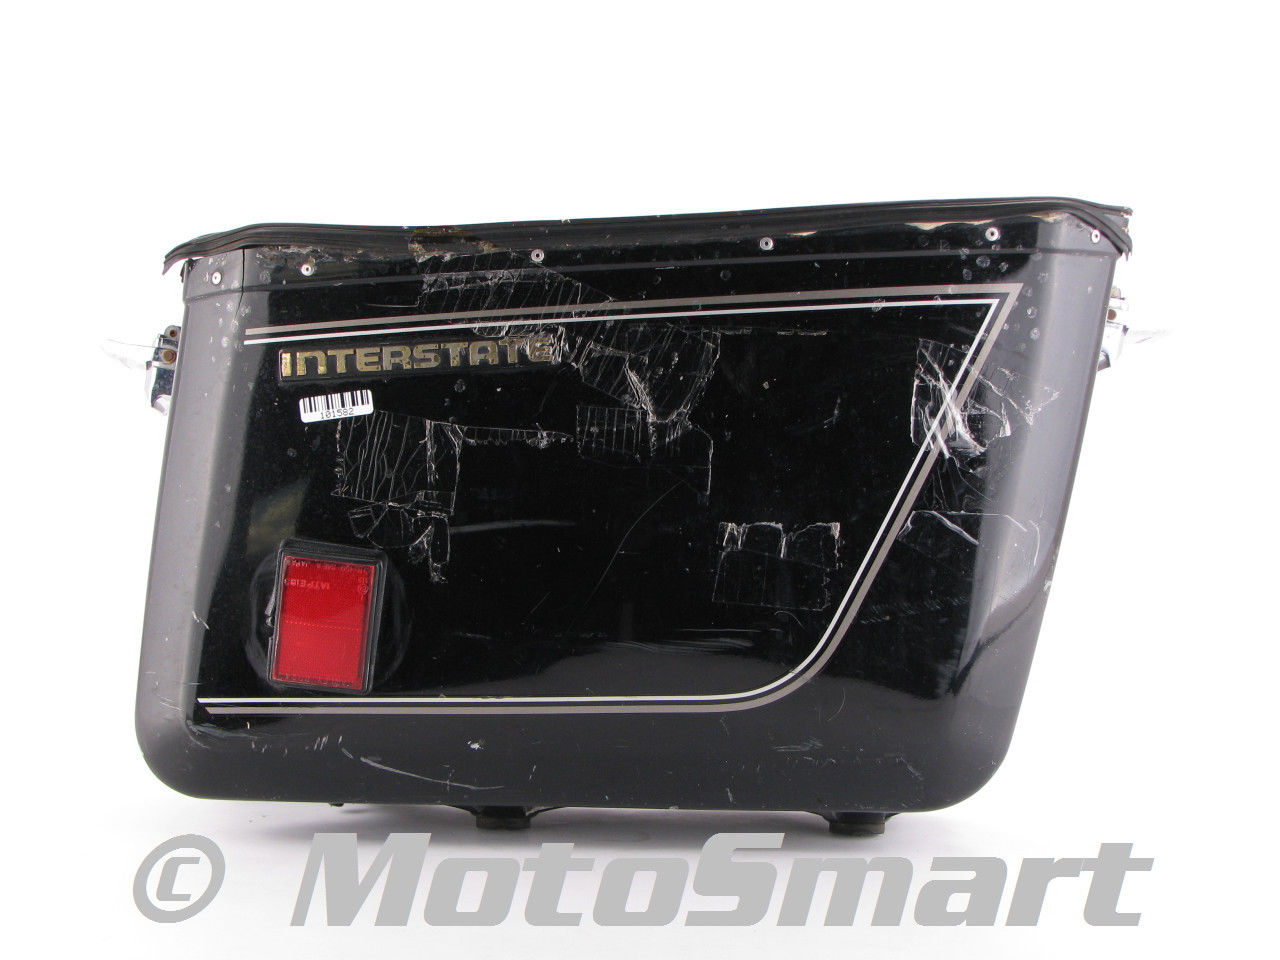 1981-Honda-GL1100-GL-1100-Right-Hard-Saddlebag-Bag-Case-Fair-Used-101582-271149007499